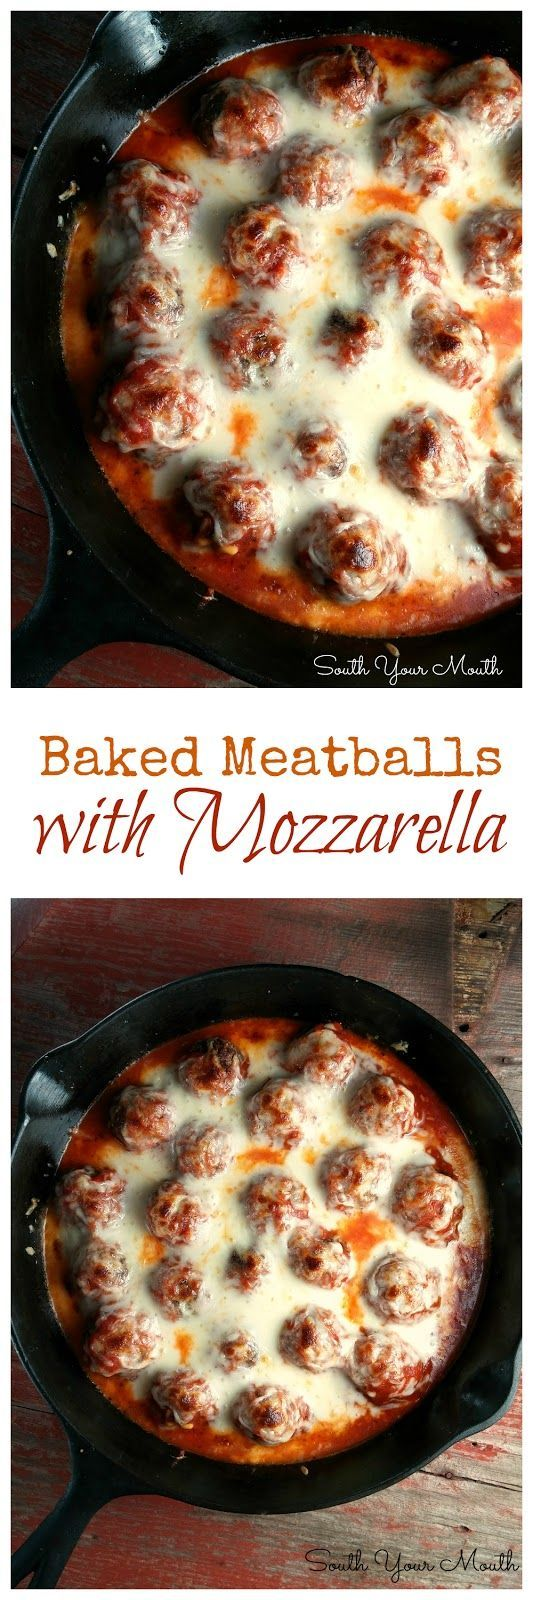 Baked Meatballs with Mozzarella! Italian meatballs baked in tangy marinara and topped with gobs of buttery, gooey mozzarella. Delicious Recipe!